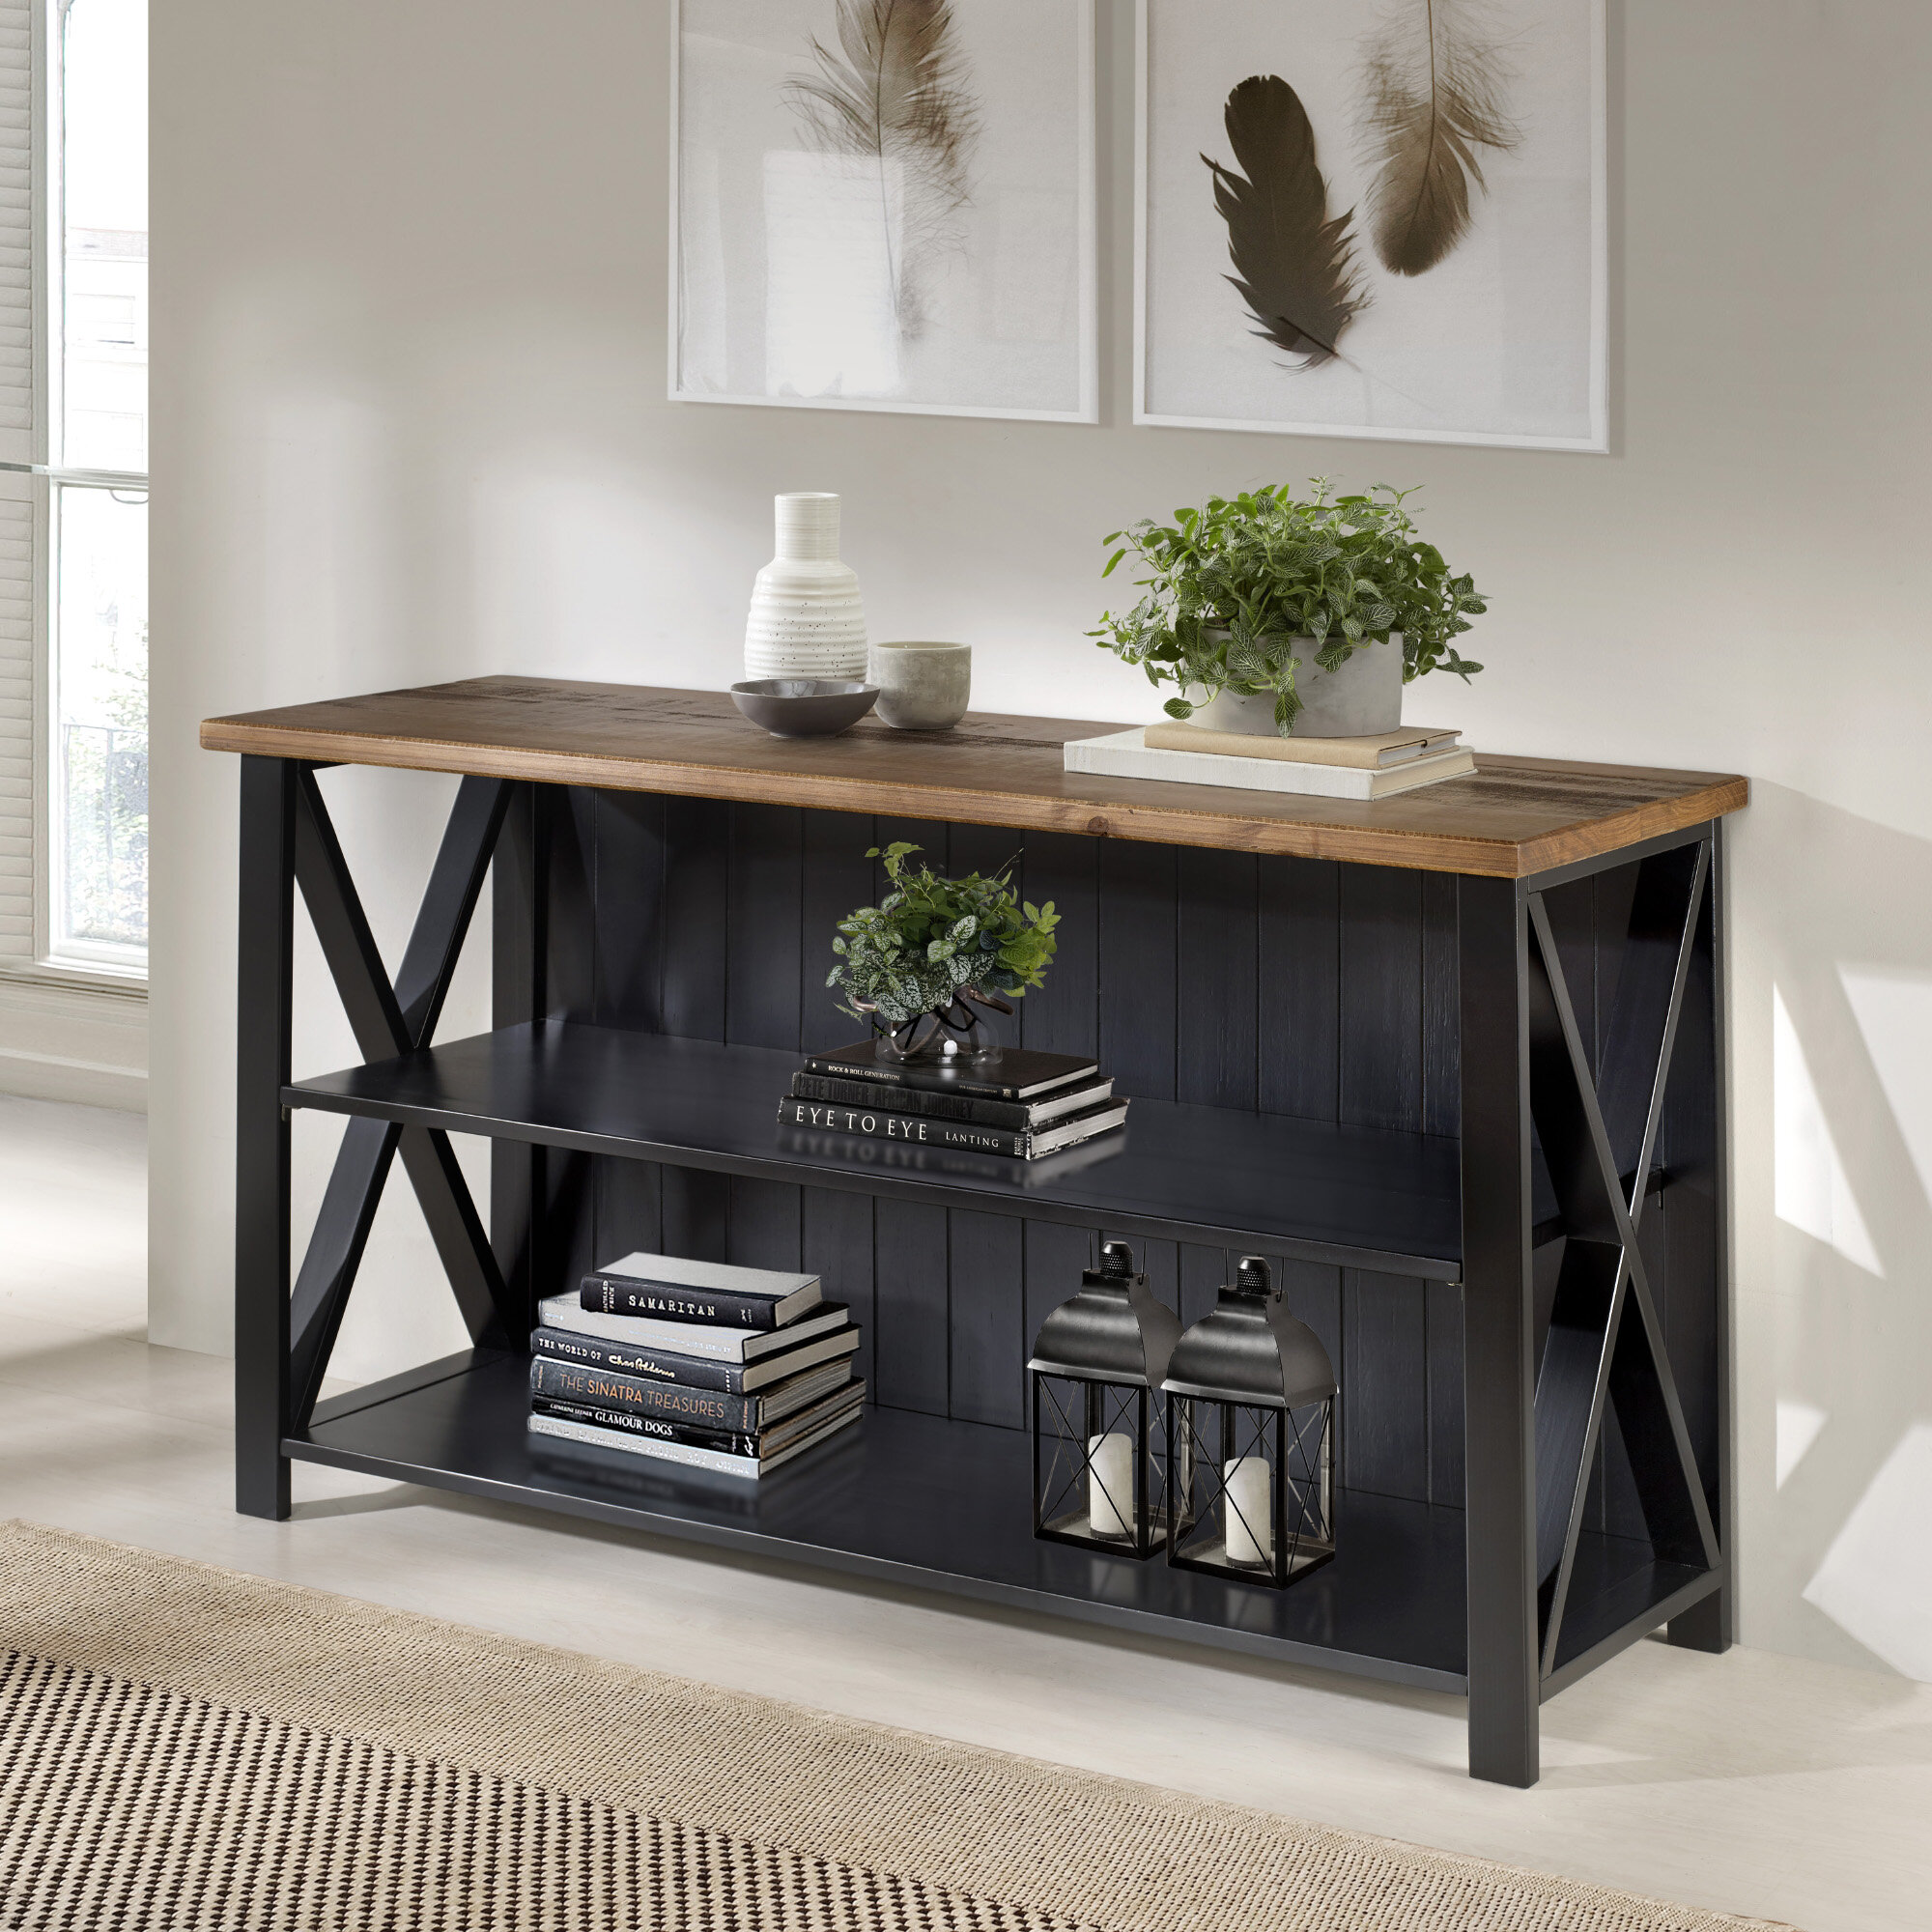 Coastal Farmhouse Selas Solid Wood TV Stand for TVs up to 58